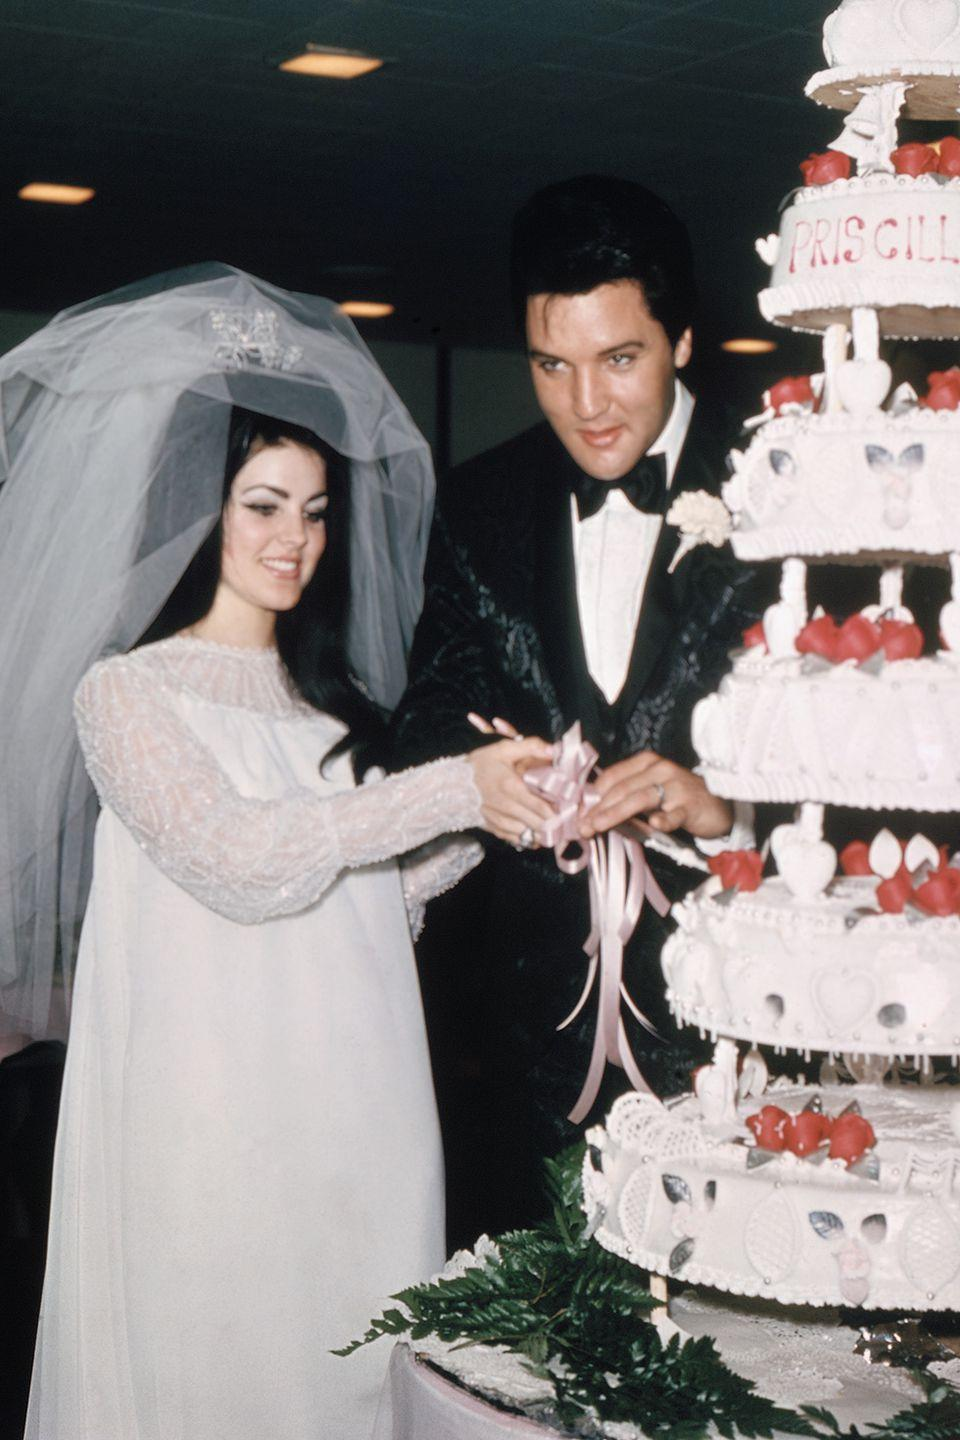 <p>Priscilla Presley designed her own white organza gown - fit for marrying The King. It had long lace sleeves and a three-quarter length veil that was secured by a rhinestone crown. Her now famous bouffant hairdo nearly rivaled Elvis Presley's pompadour.</p>